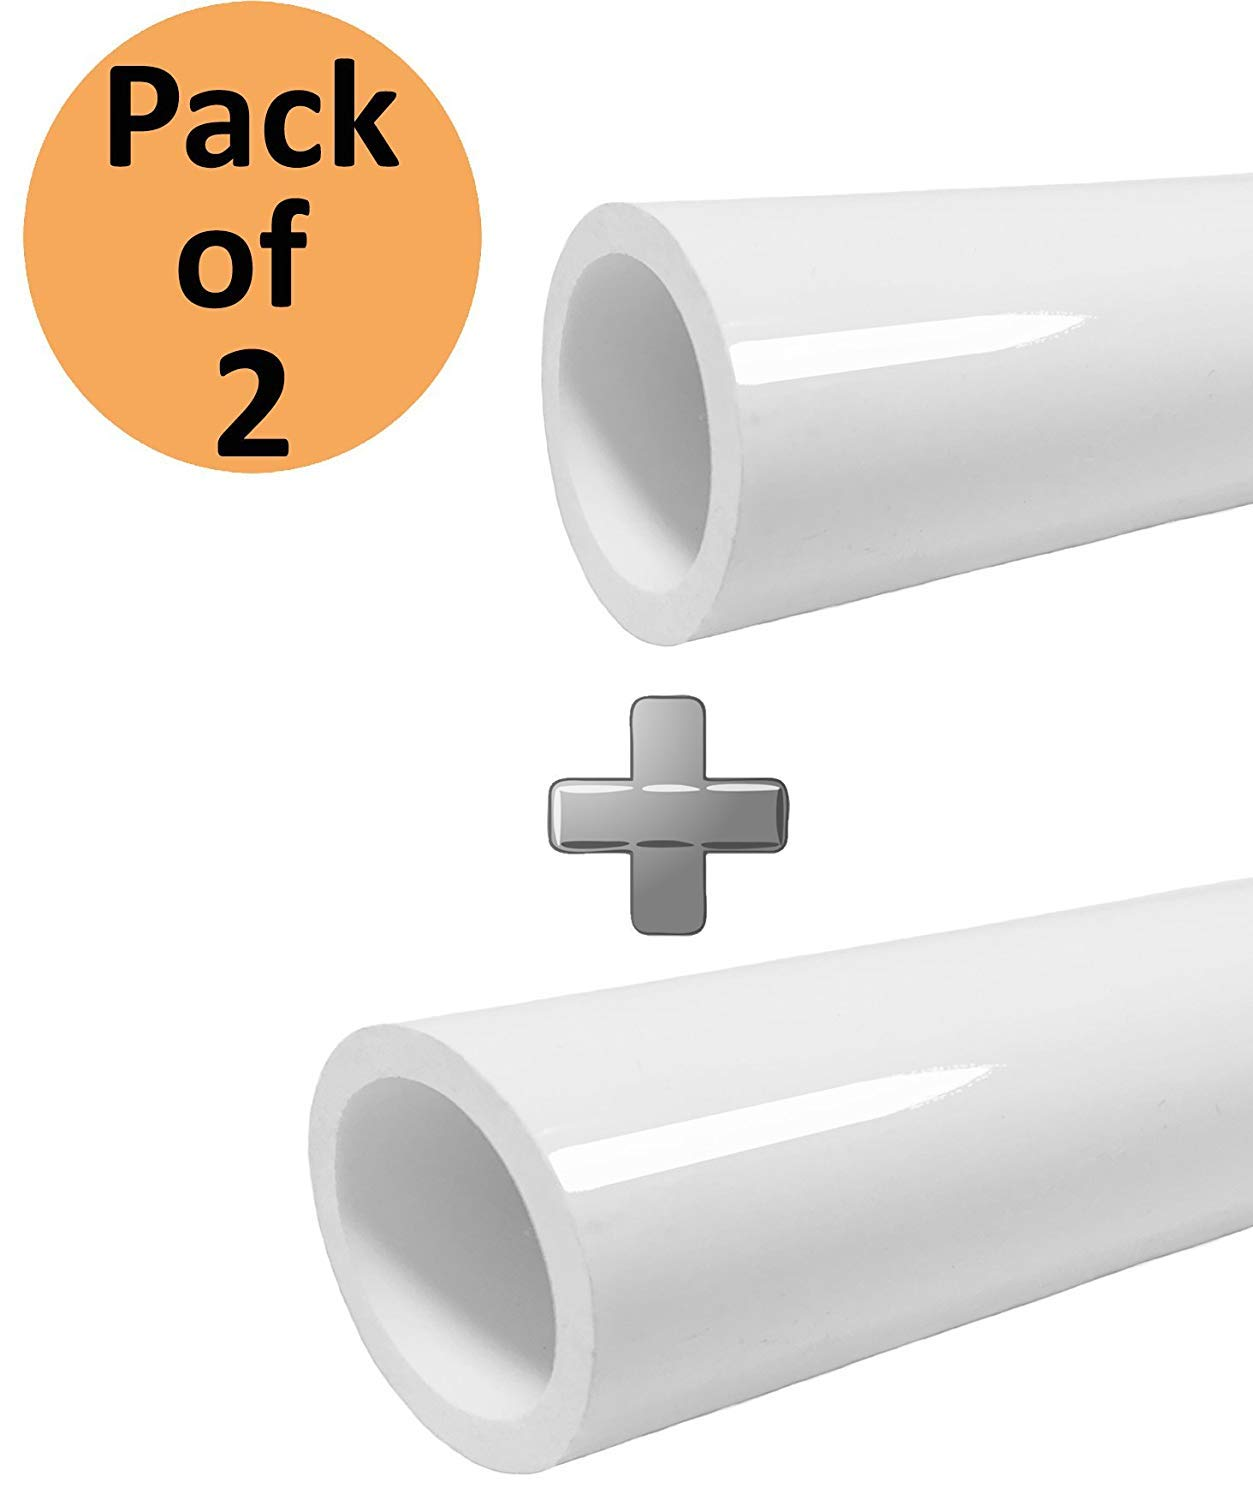 PVC Pipe 1 inch 5ft Schedule 40 PVC Pipe, Furniture Grade,Size Pipe 5' long, White [2Pack] by SELLERS360